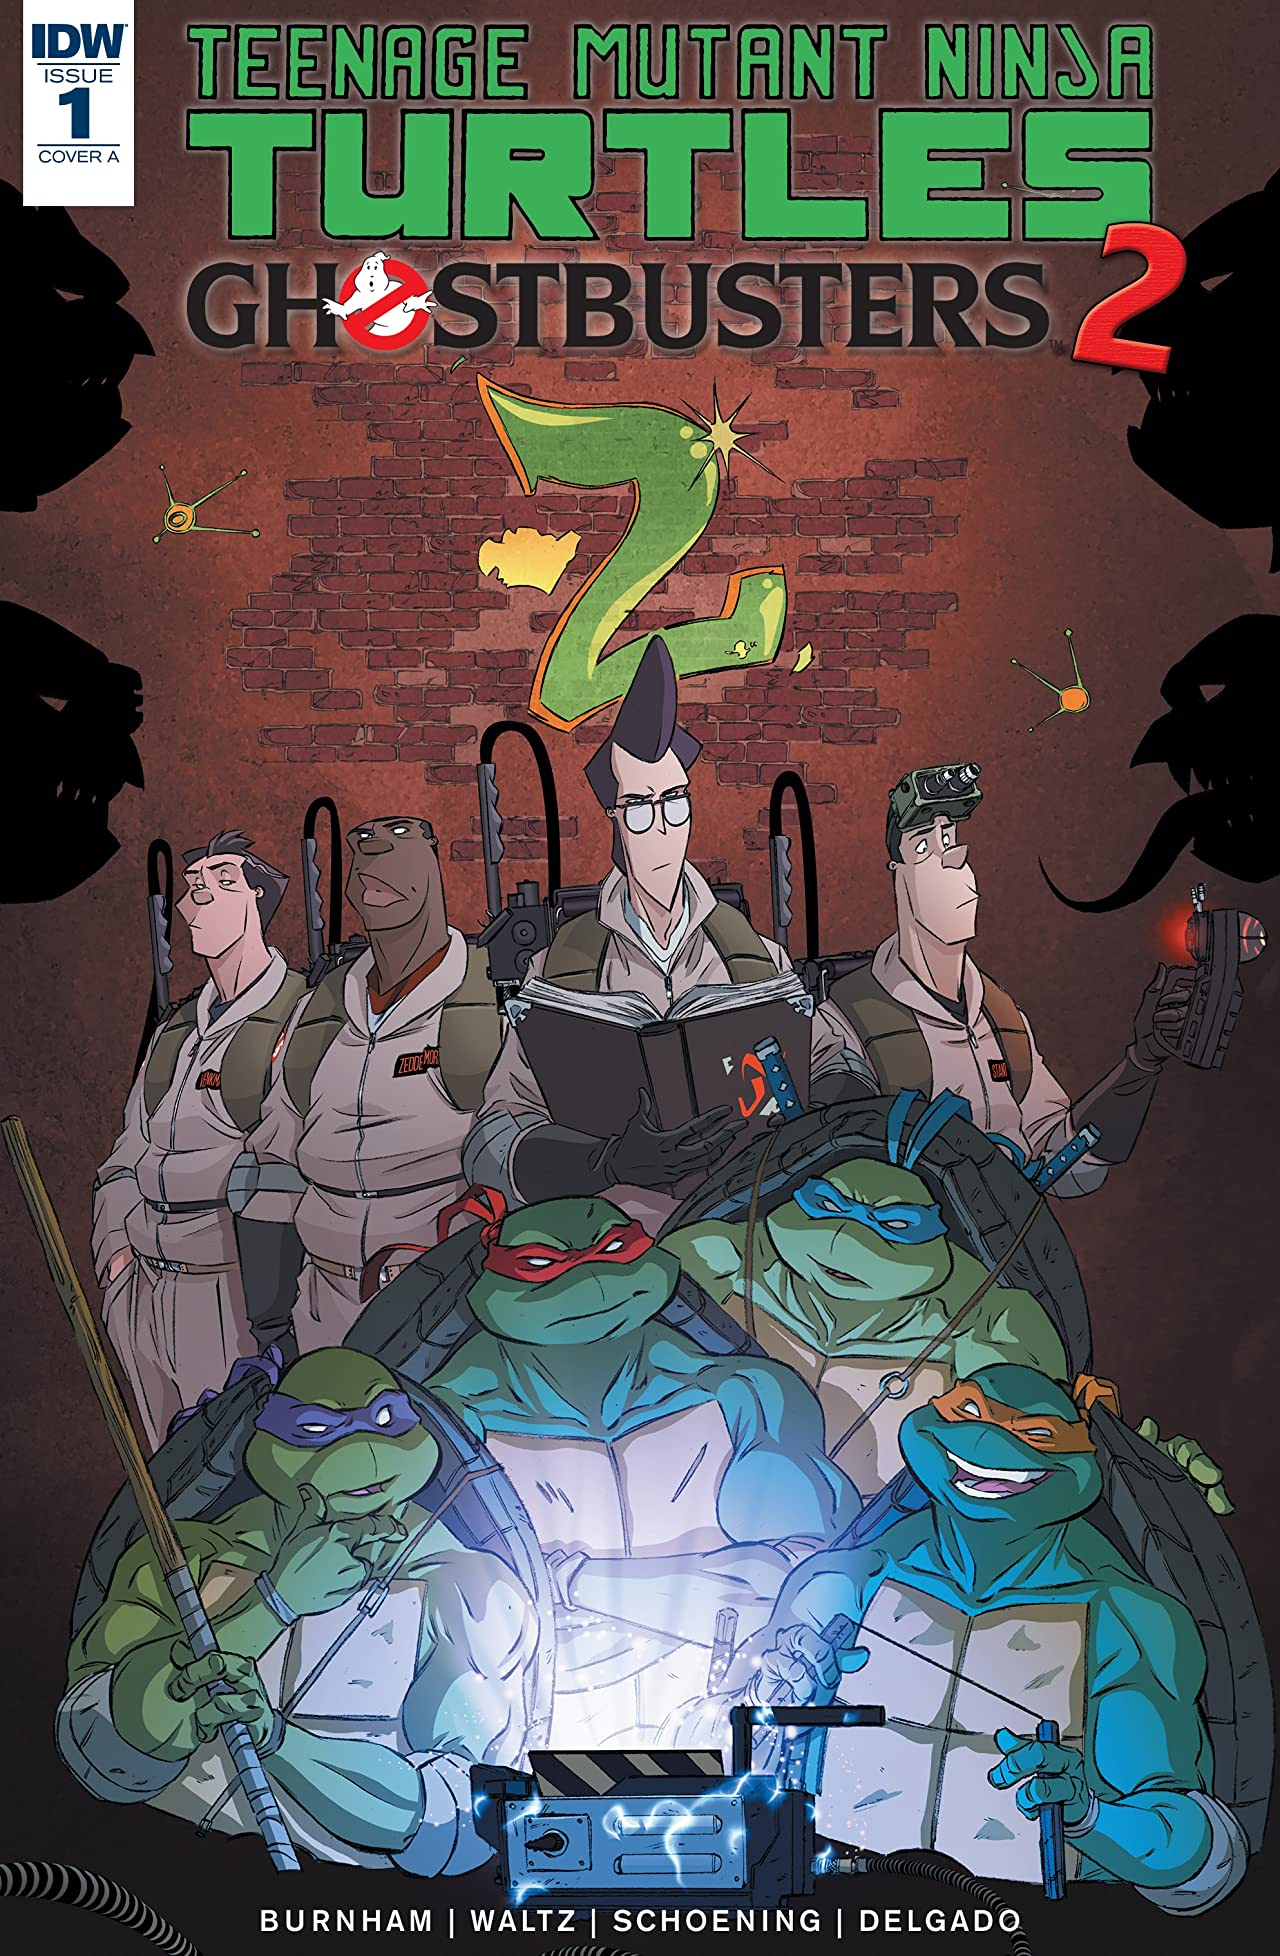 Teenage Mutant Ninja Turtles/Ghostbusters II #1 (of 5)